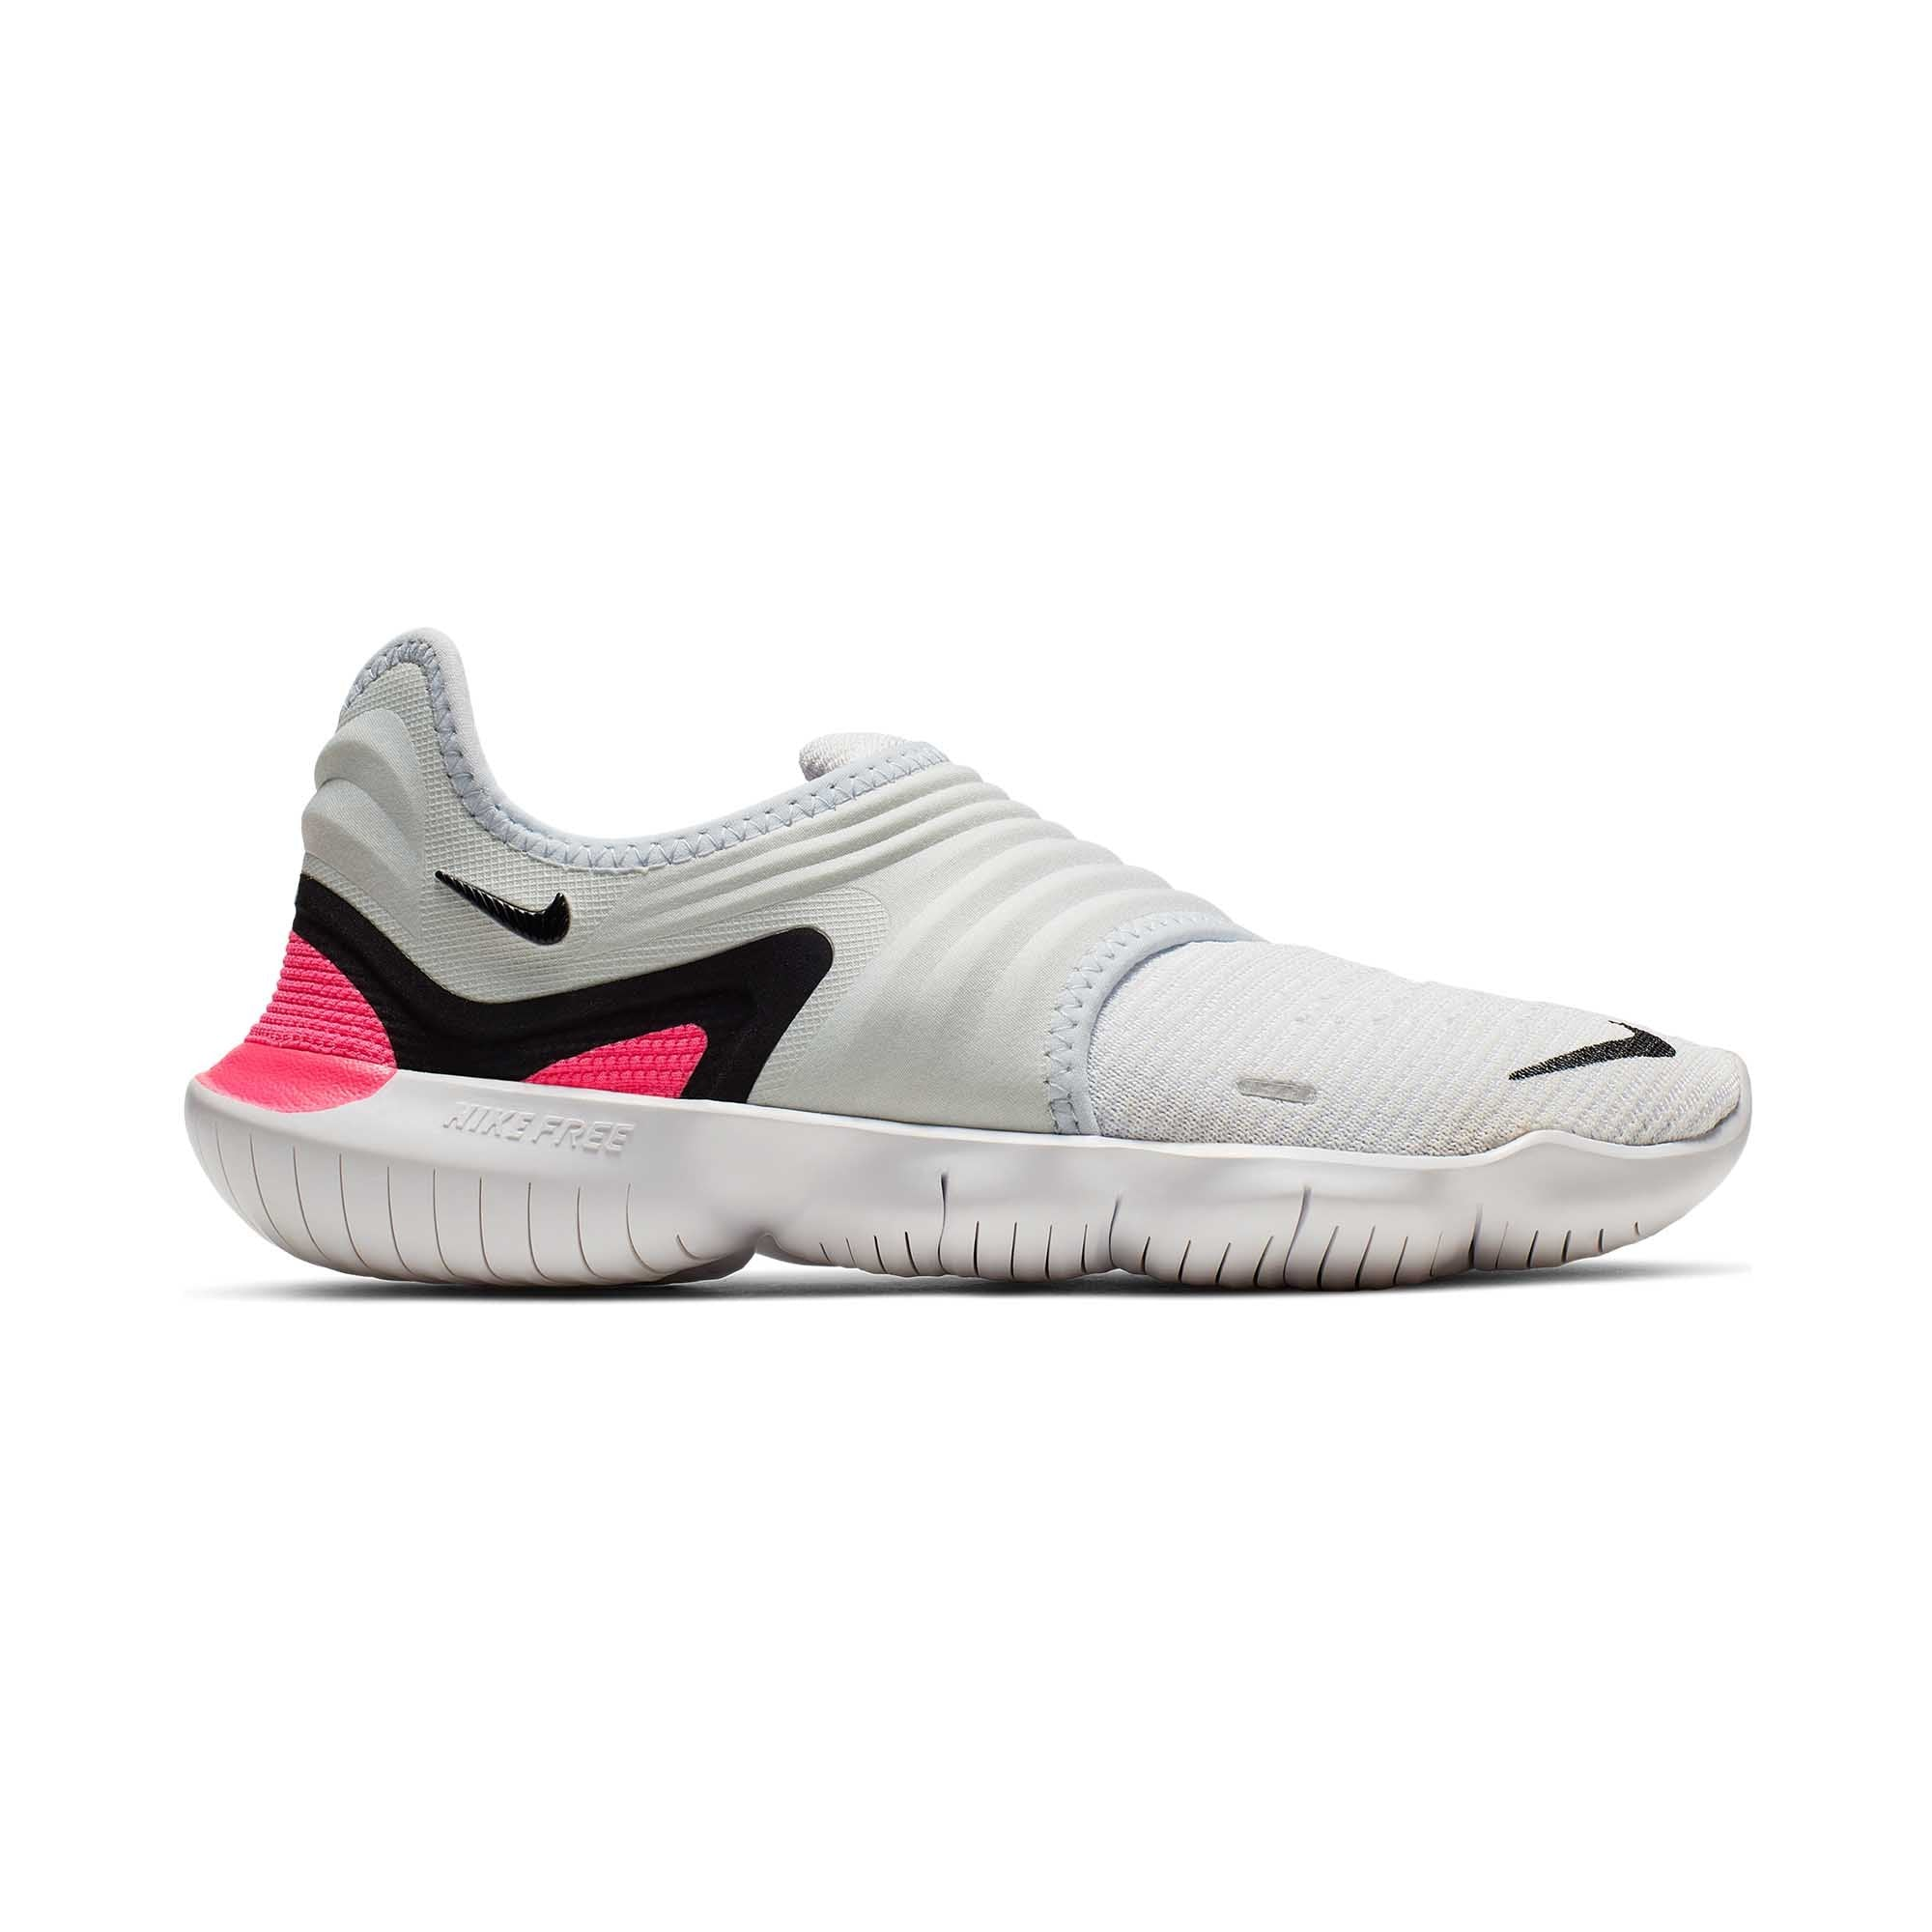 d993e6f05c4 Buy Nike Women Free Run Flyknit 3.0 Running Shoes Online in Singapore